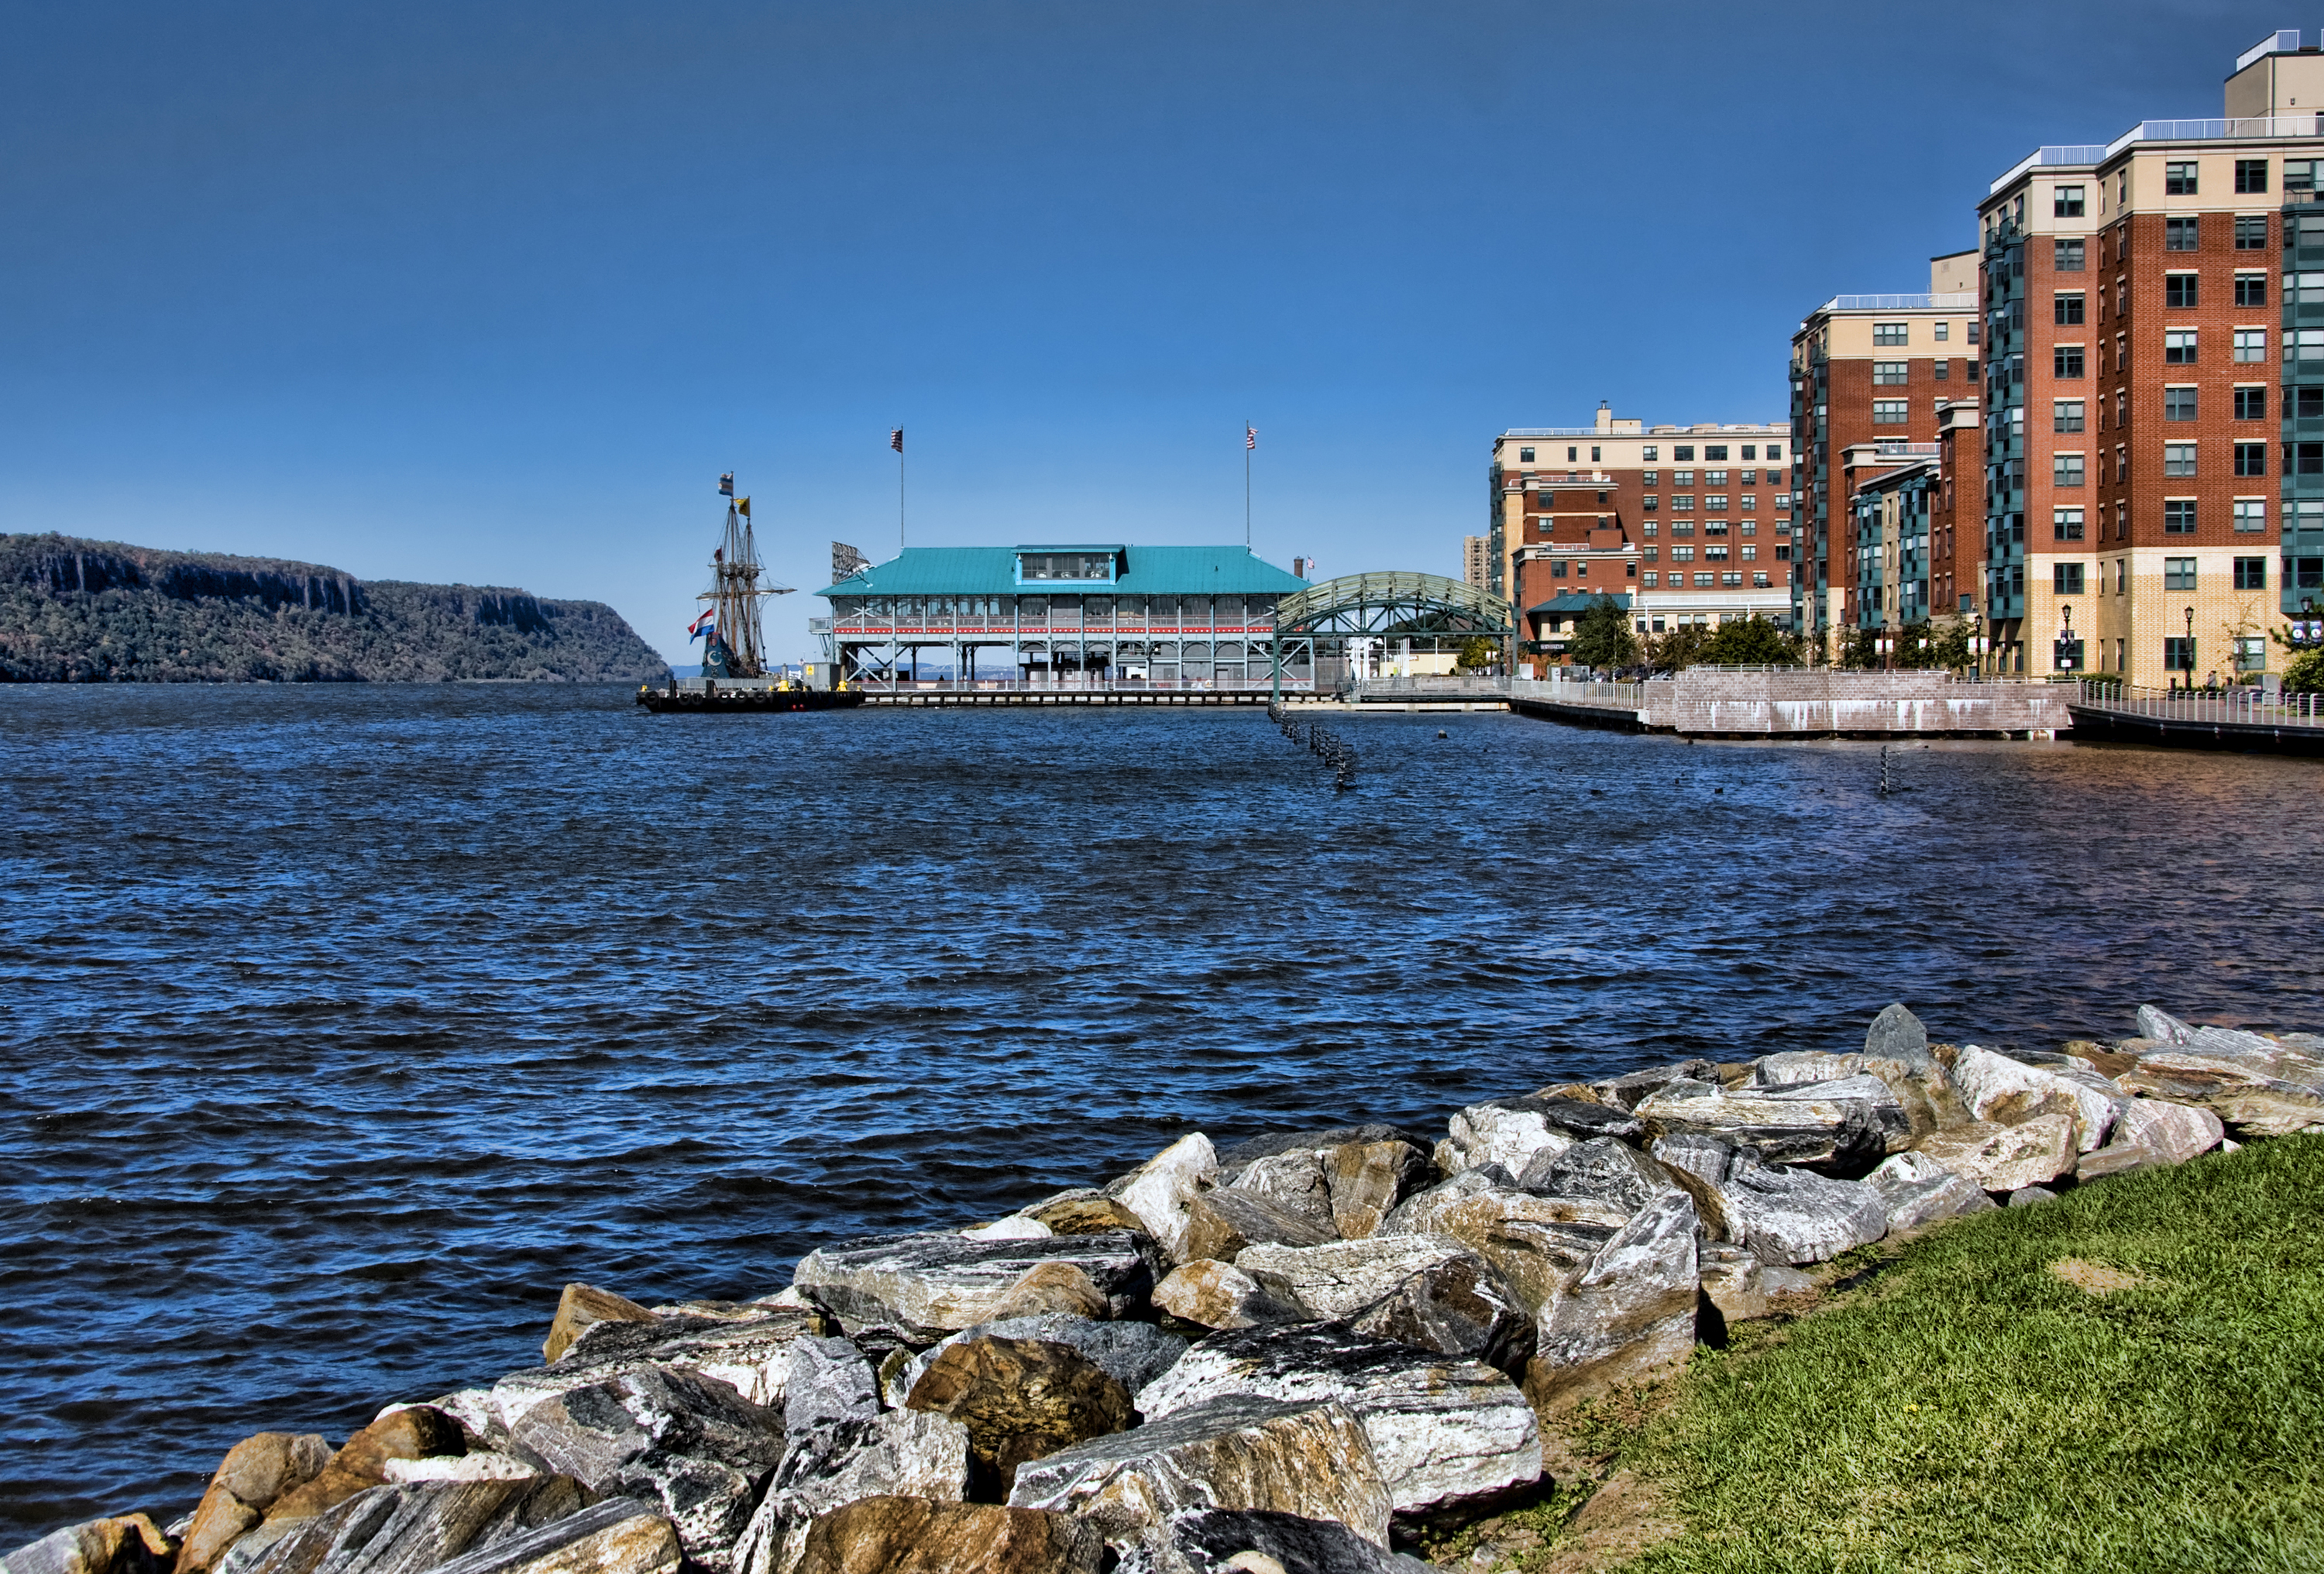 A waterfront with rocks and green grass. The water is blue and there are buildings in the distance.